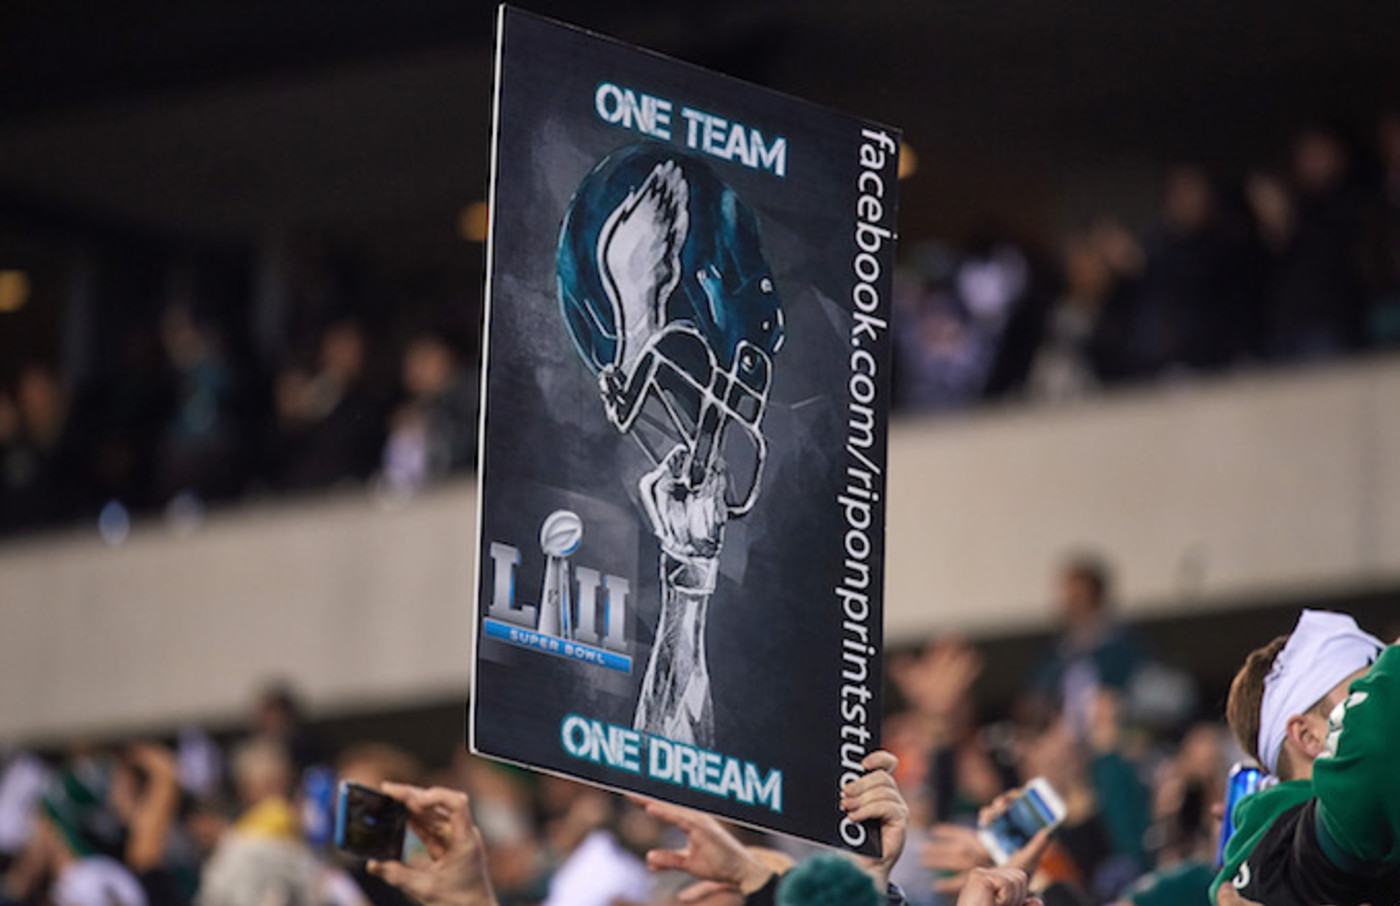 Philadelphia Eagles fan celebrates by holding up a sign during the NFC Championship Game.